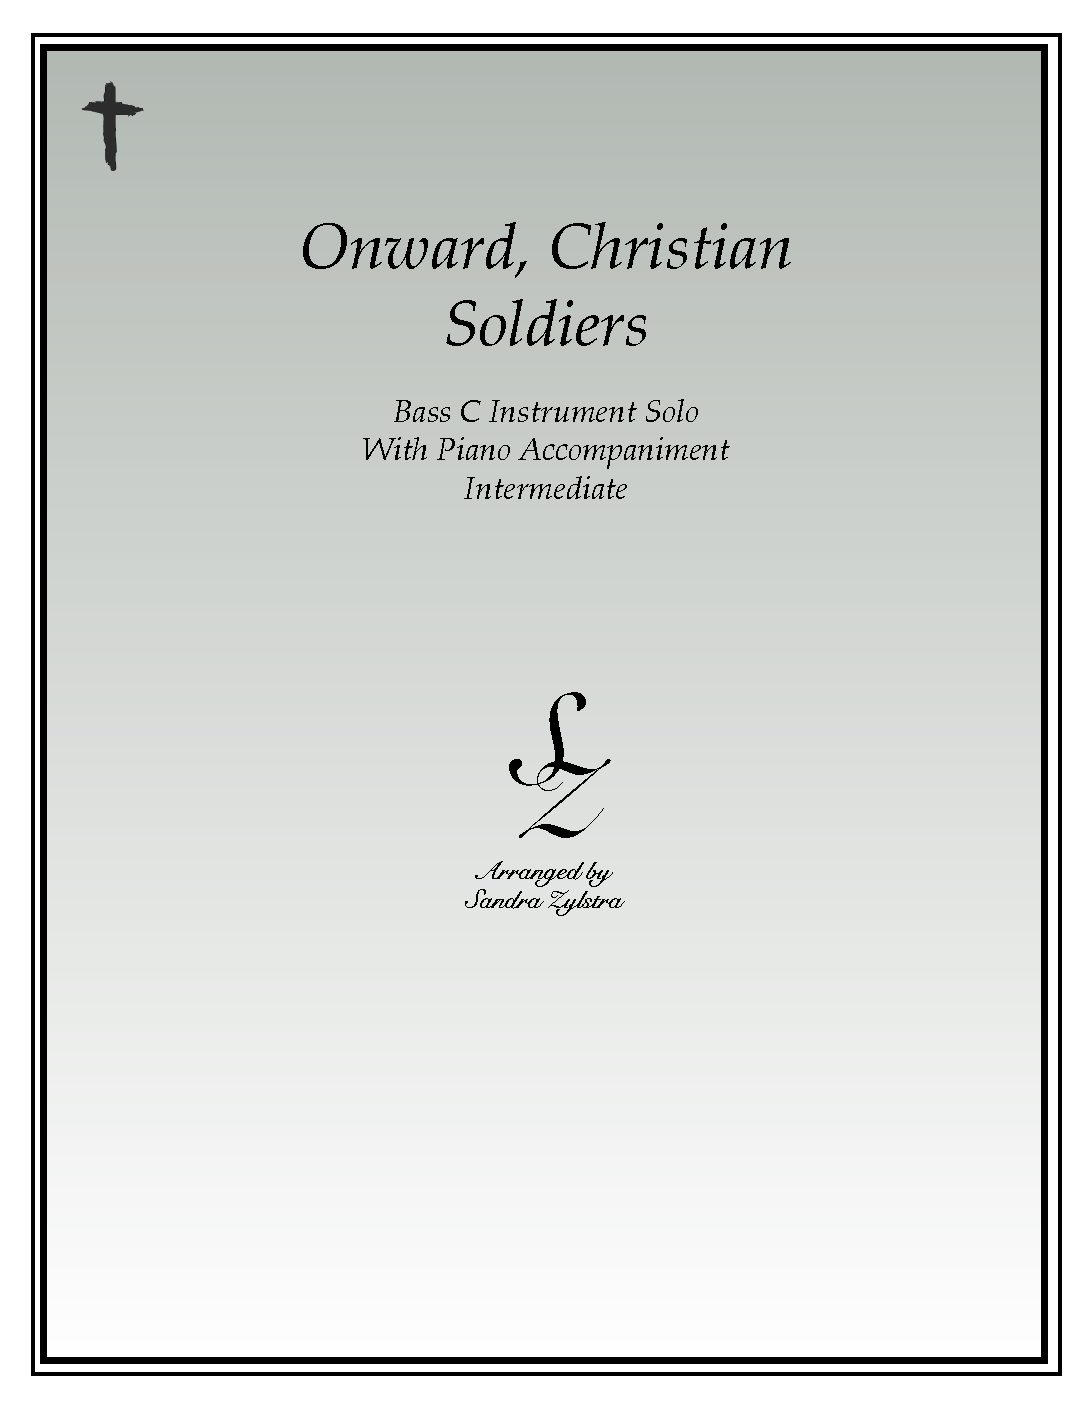 IS 49 Onward Christian Soldiers 05 Bass C pdf